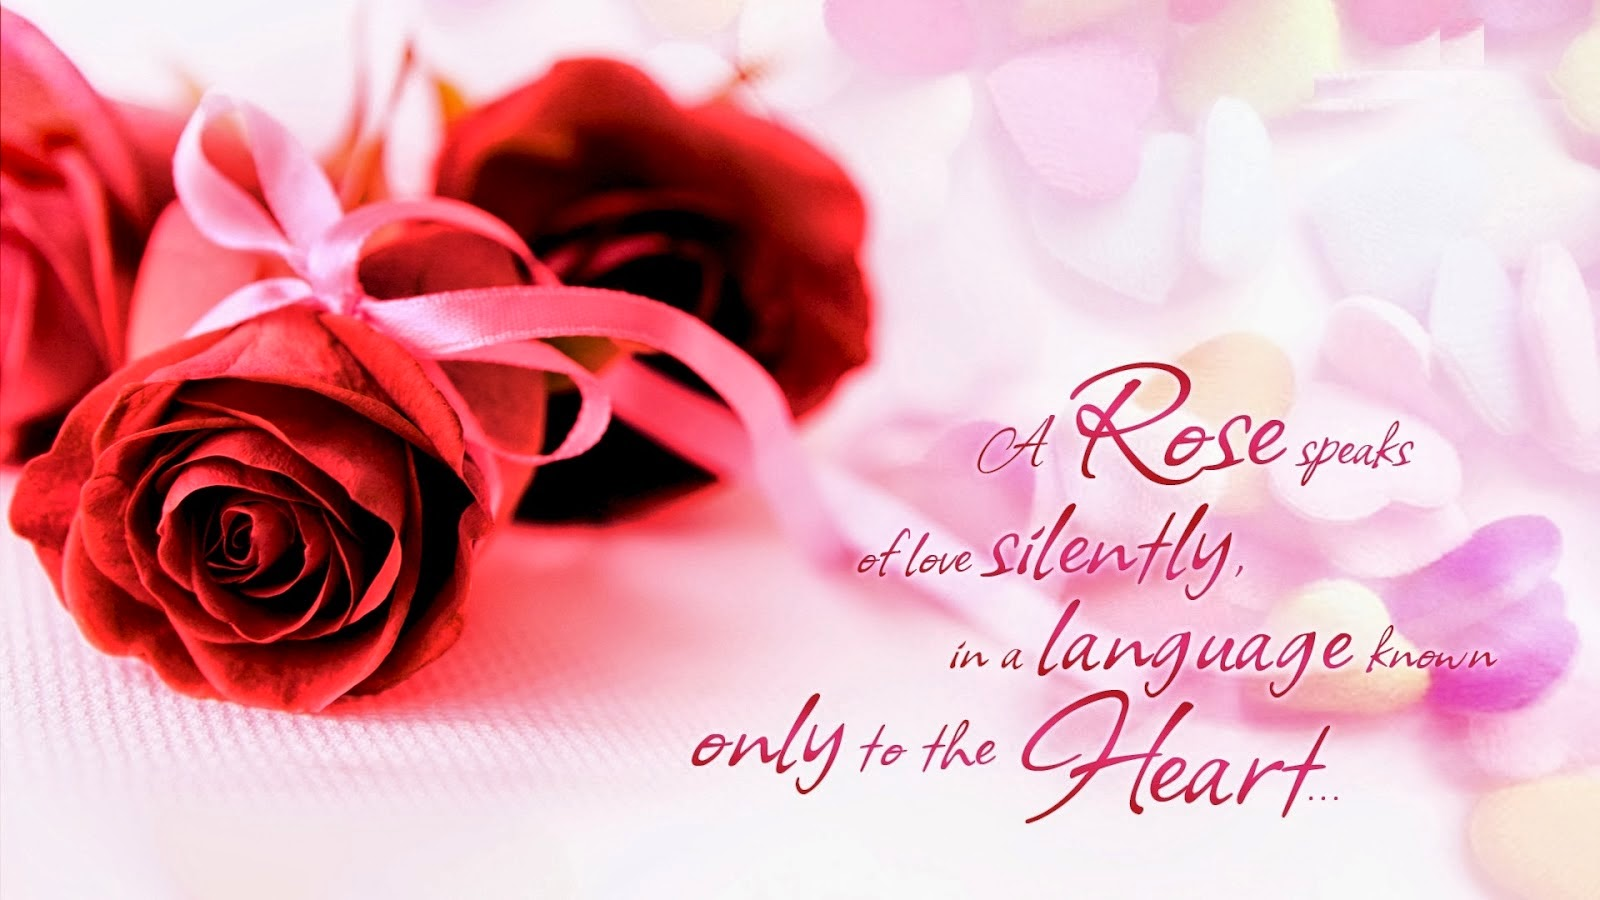 Happy Rose day a rose speaks of love silently messages with love